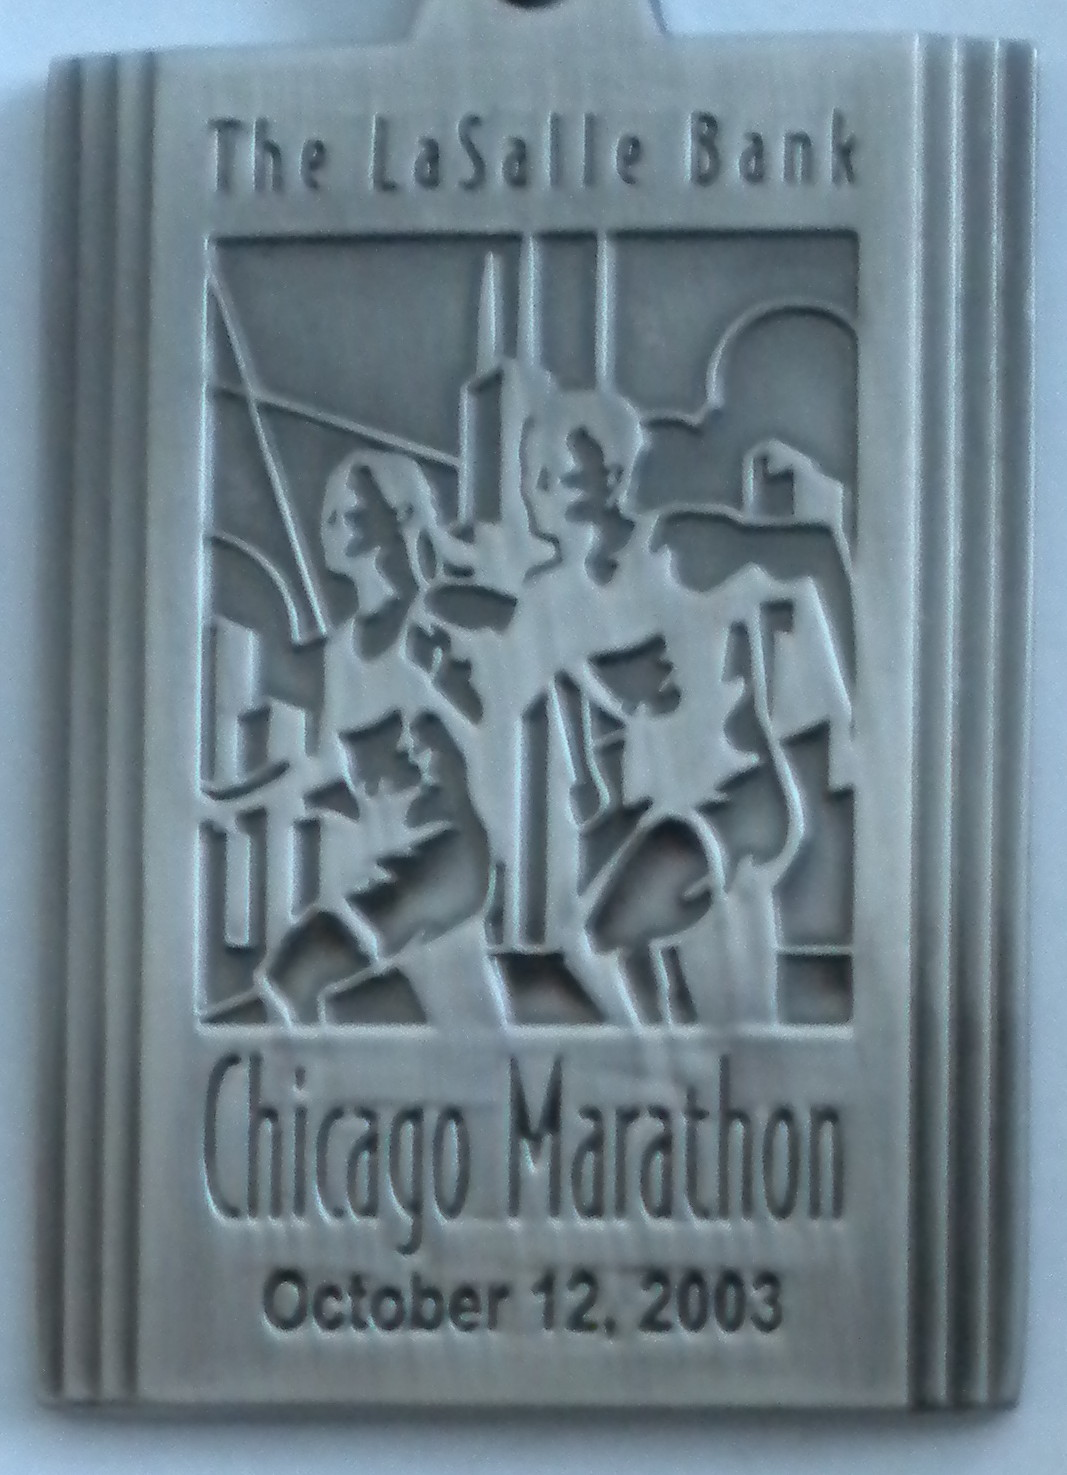 2003 Chicago Marathon -- my first